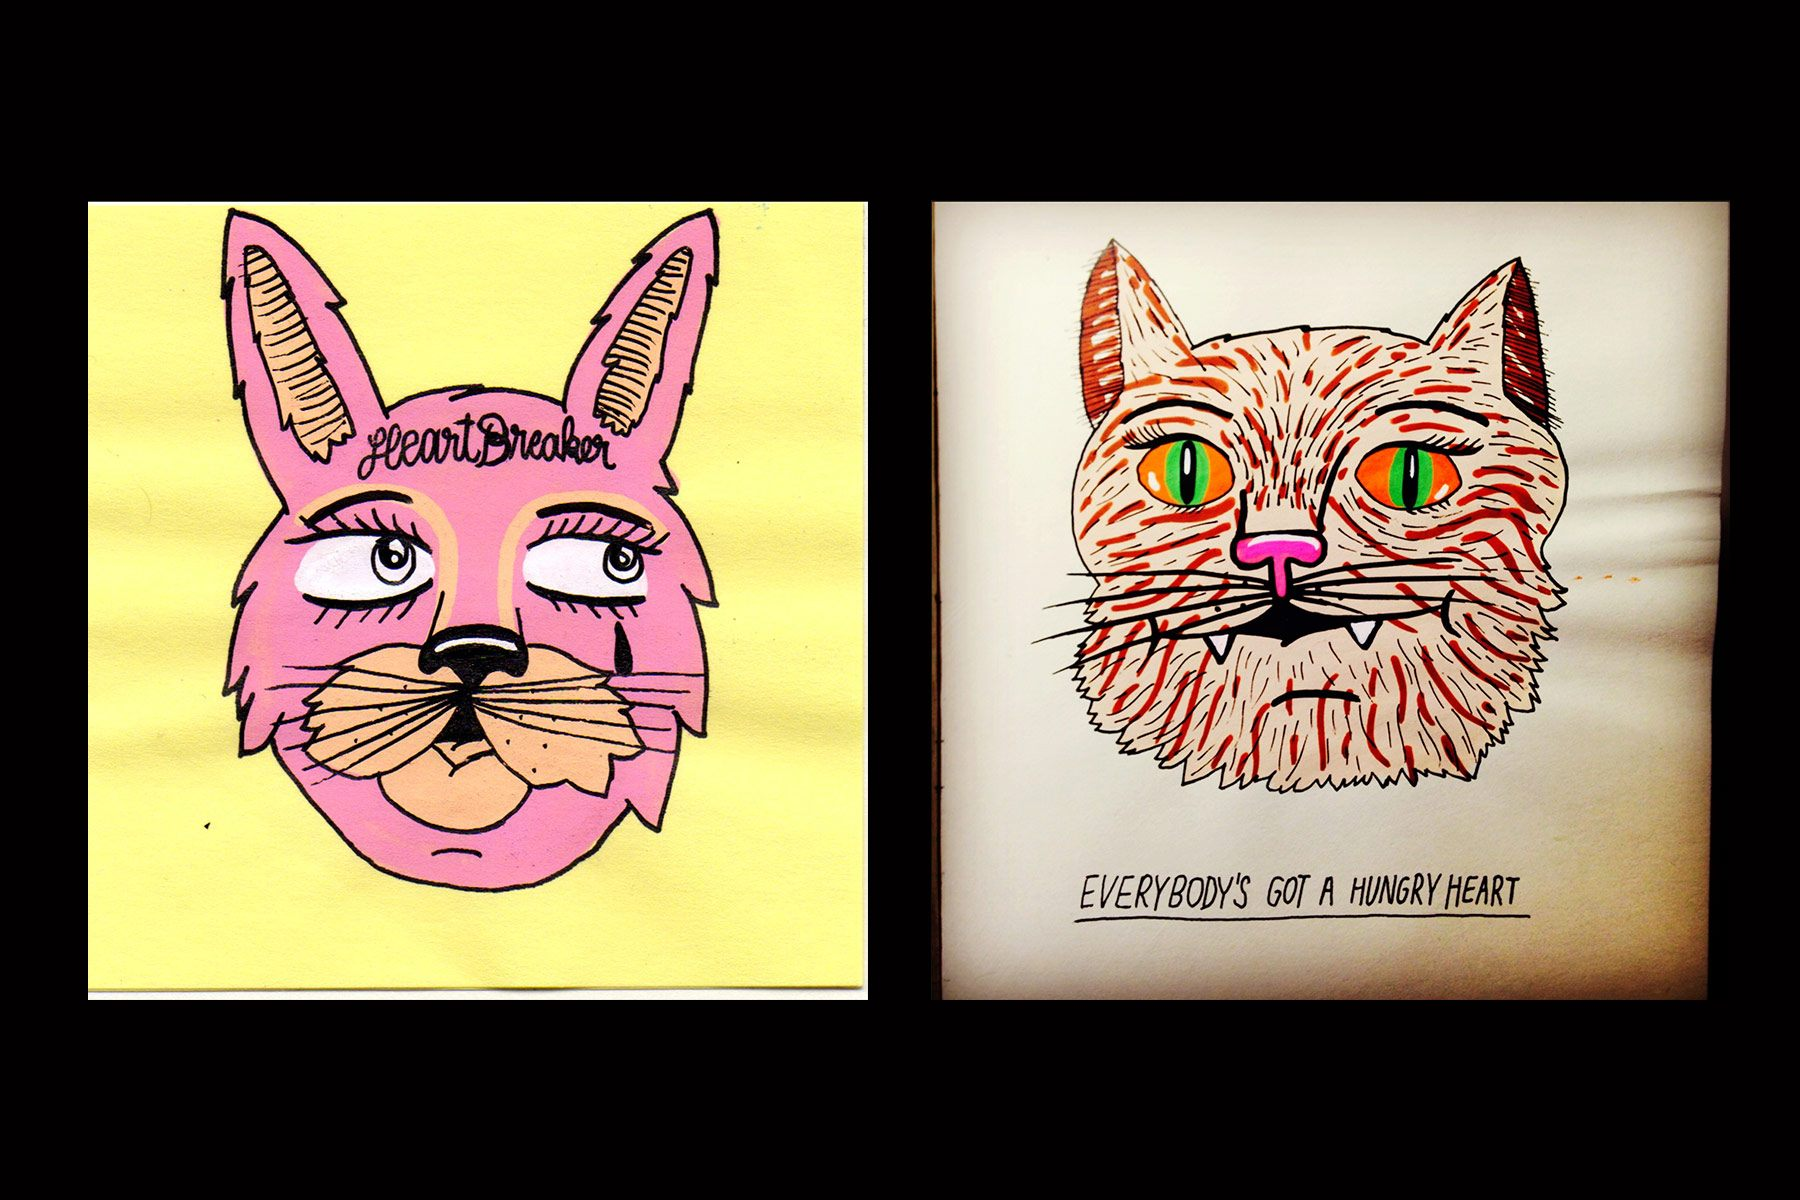 Drawings of a rabbit and cat by Pacolli. Ponyboy magazine.